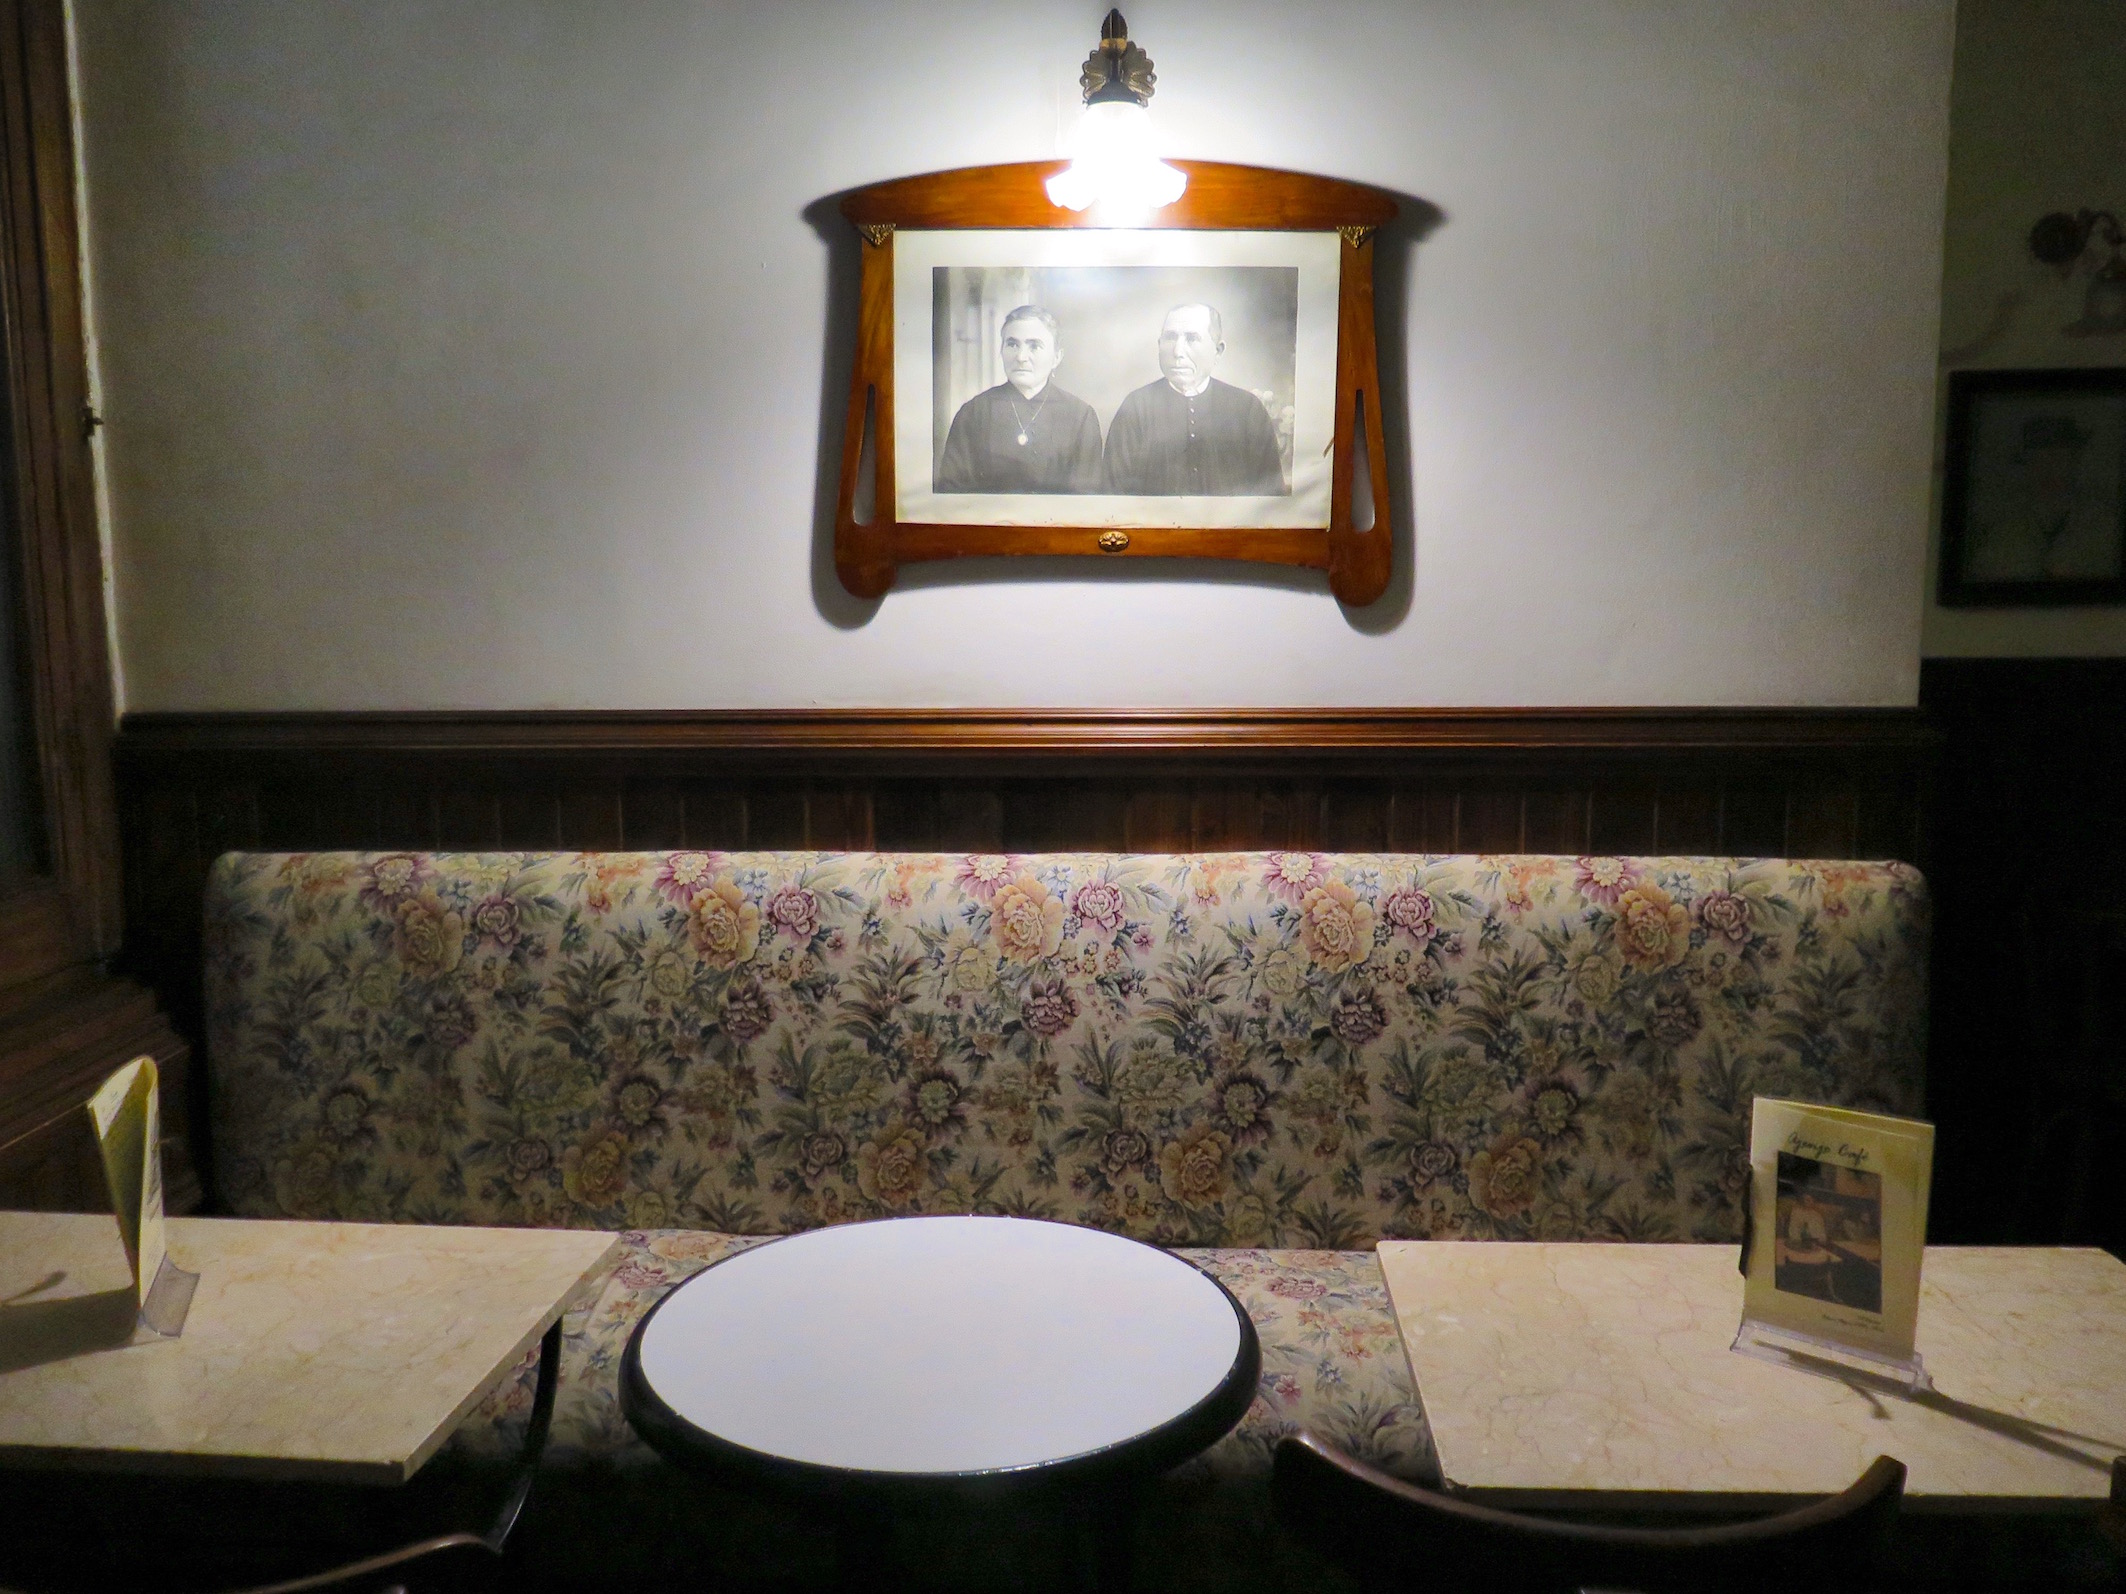 Original floral fabric from 38 years ago still lines the booths around the perimeters of each room